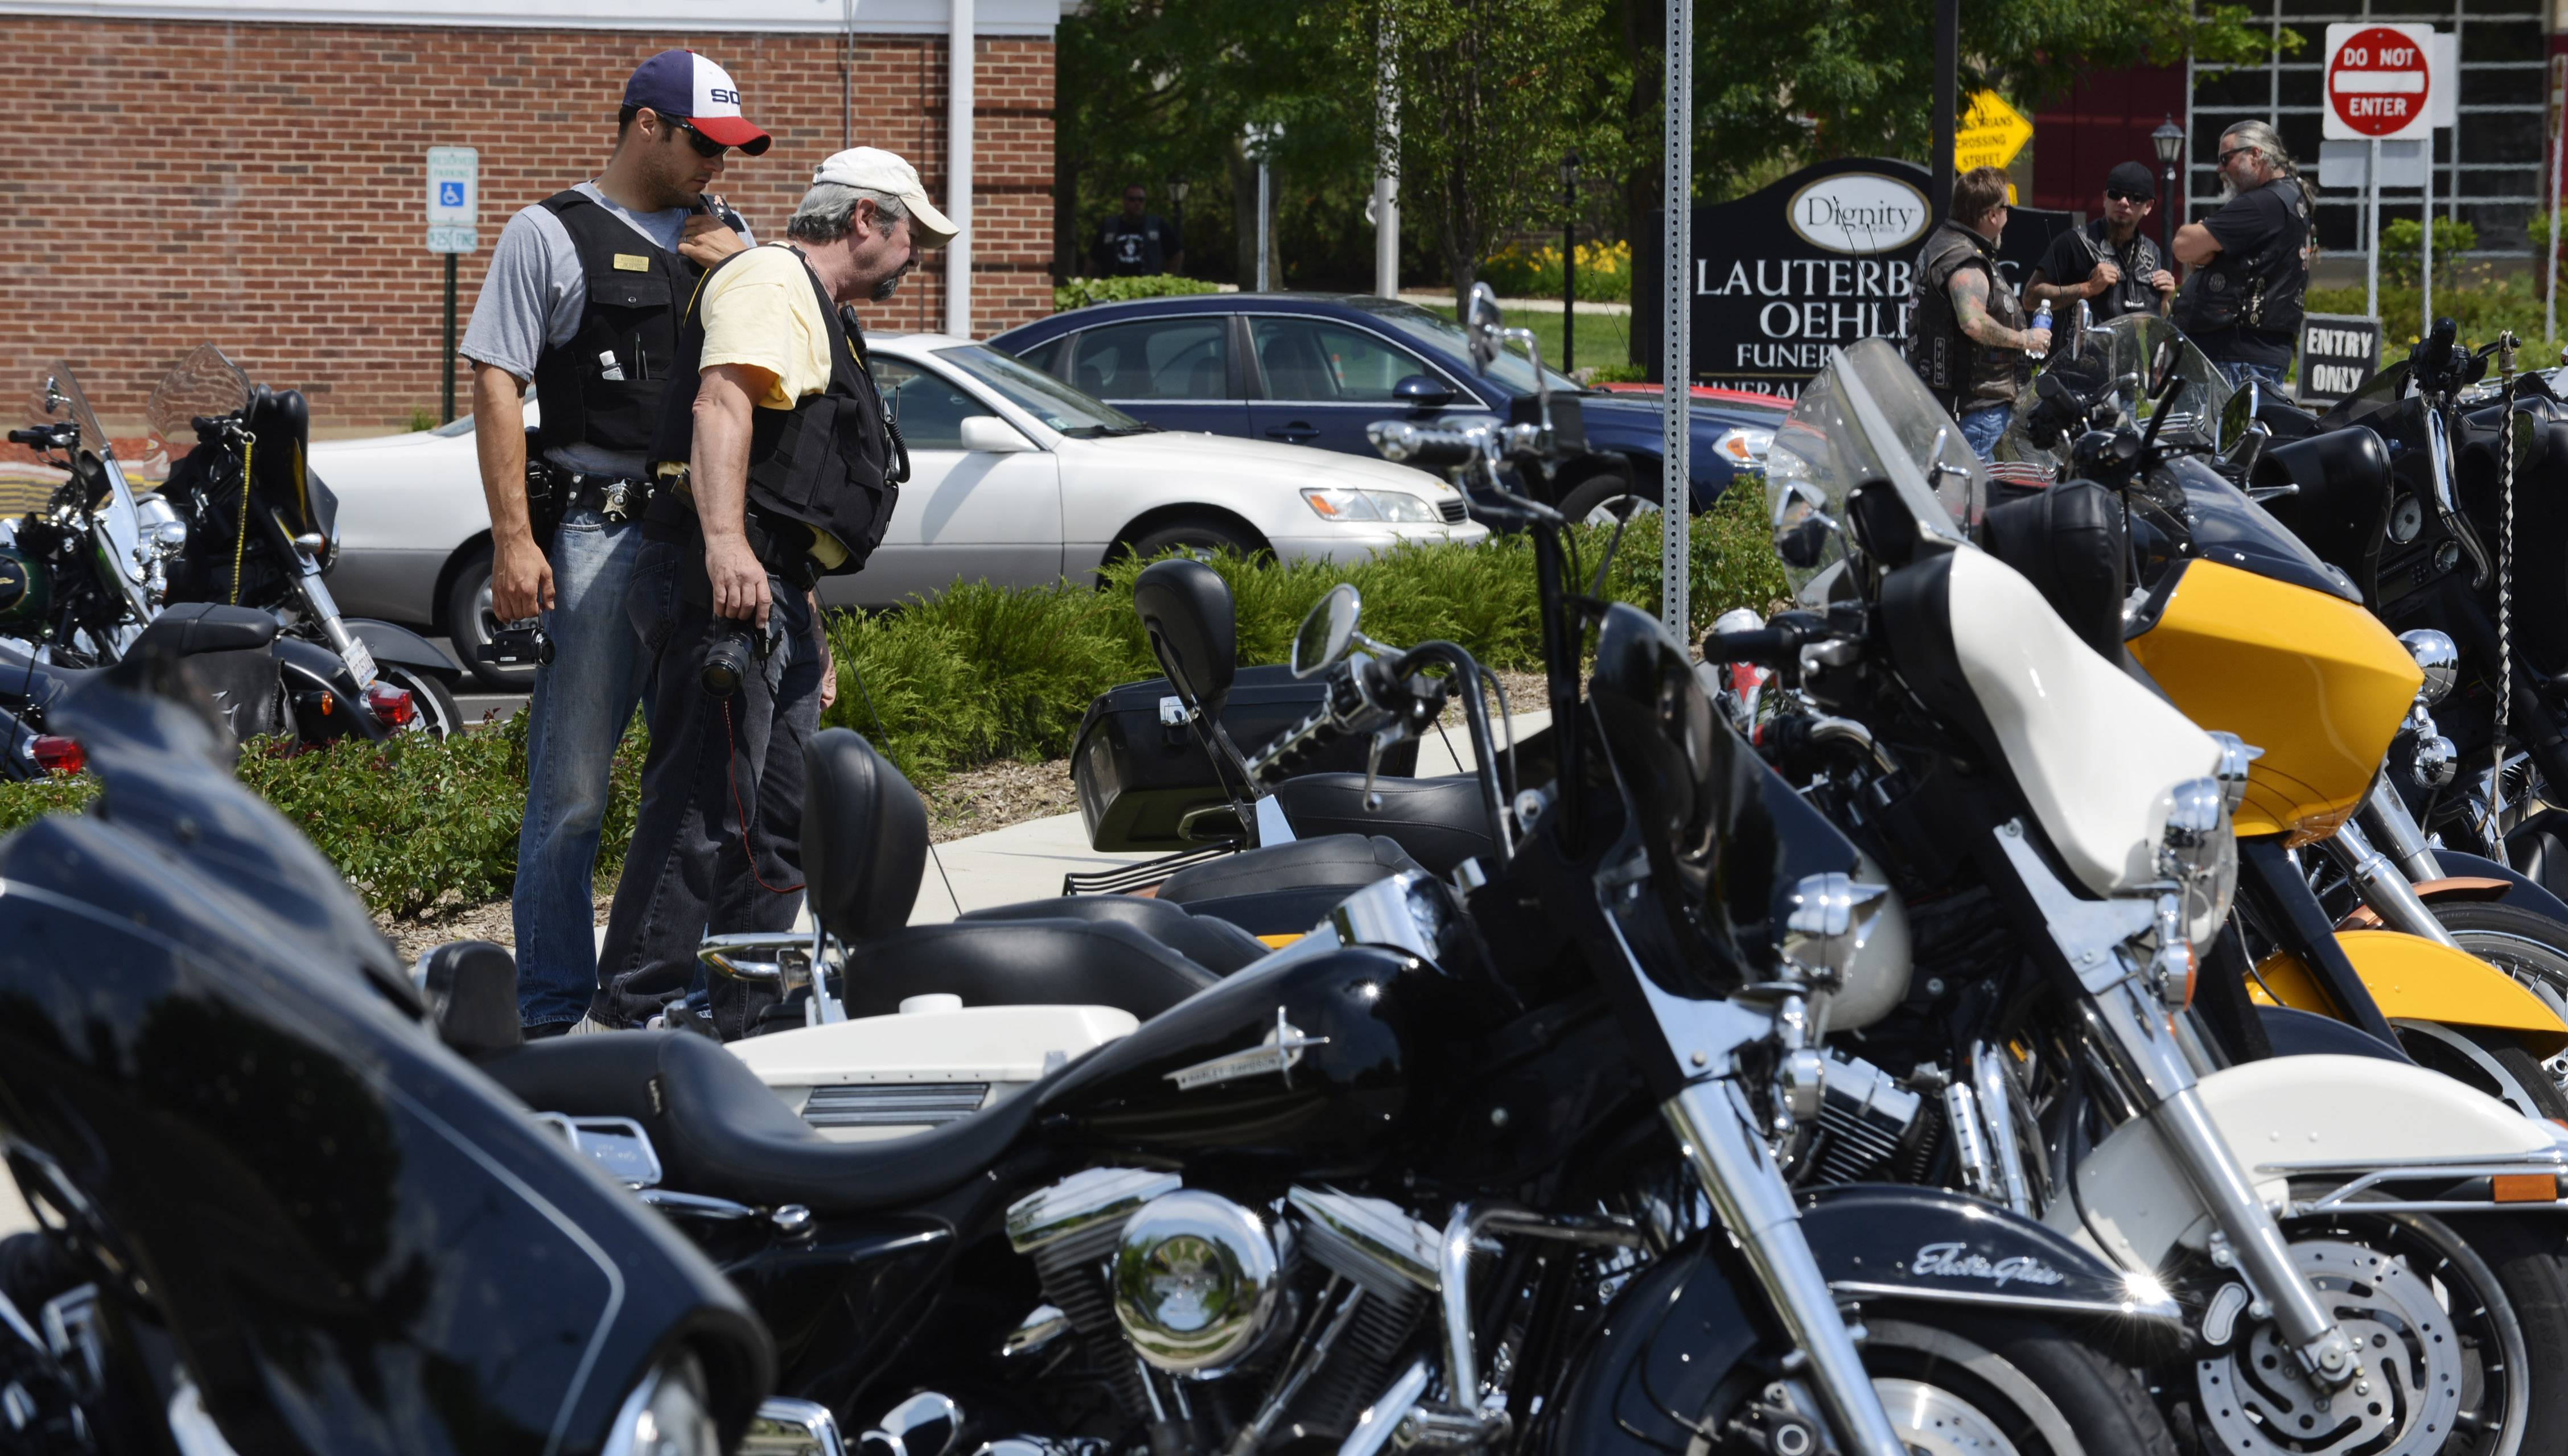 Illinois State Police officers conduct surveillance and photograph motorcycles Saturday outside the wake for Douglas Peters at the Lauterburg-Oehler Funeral Home.